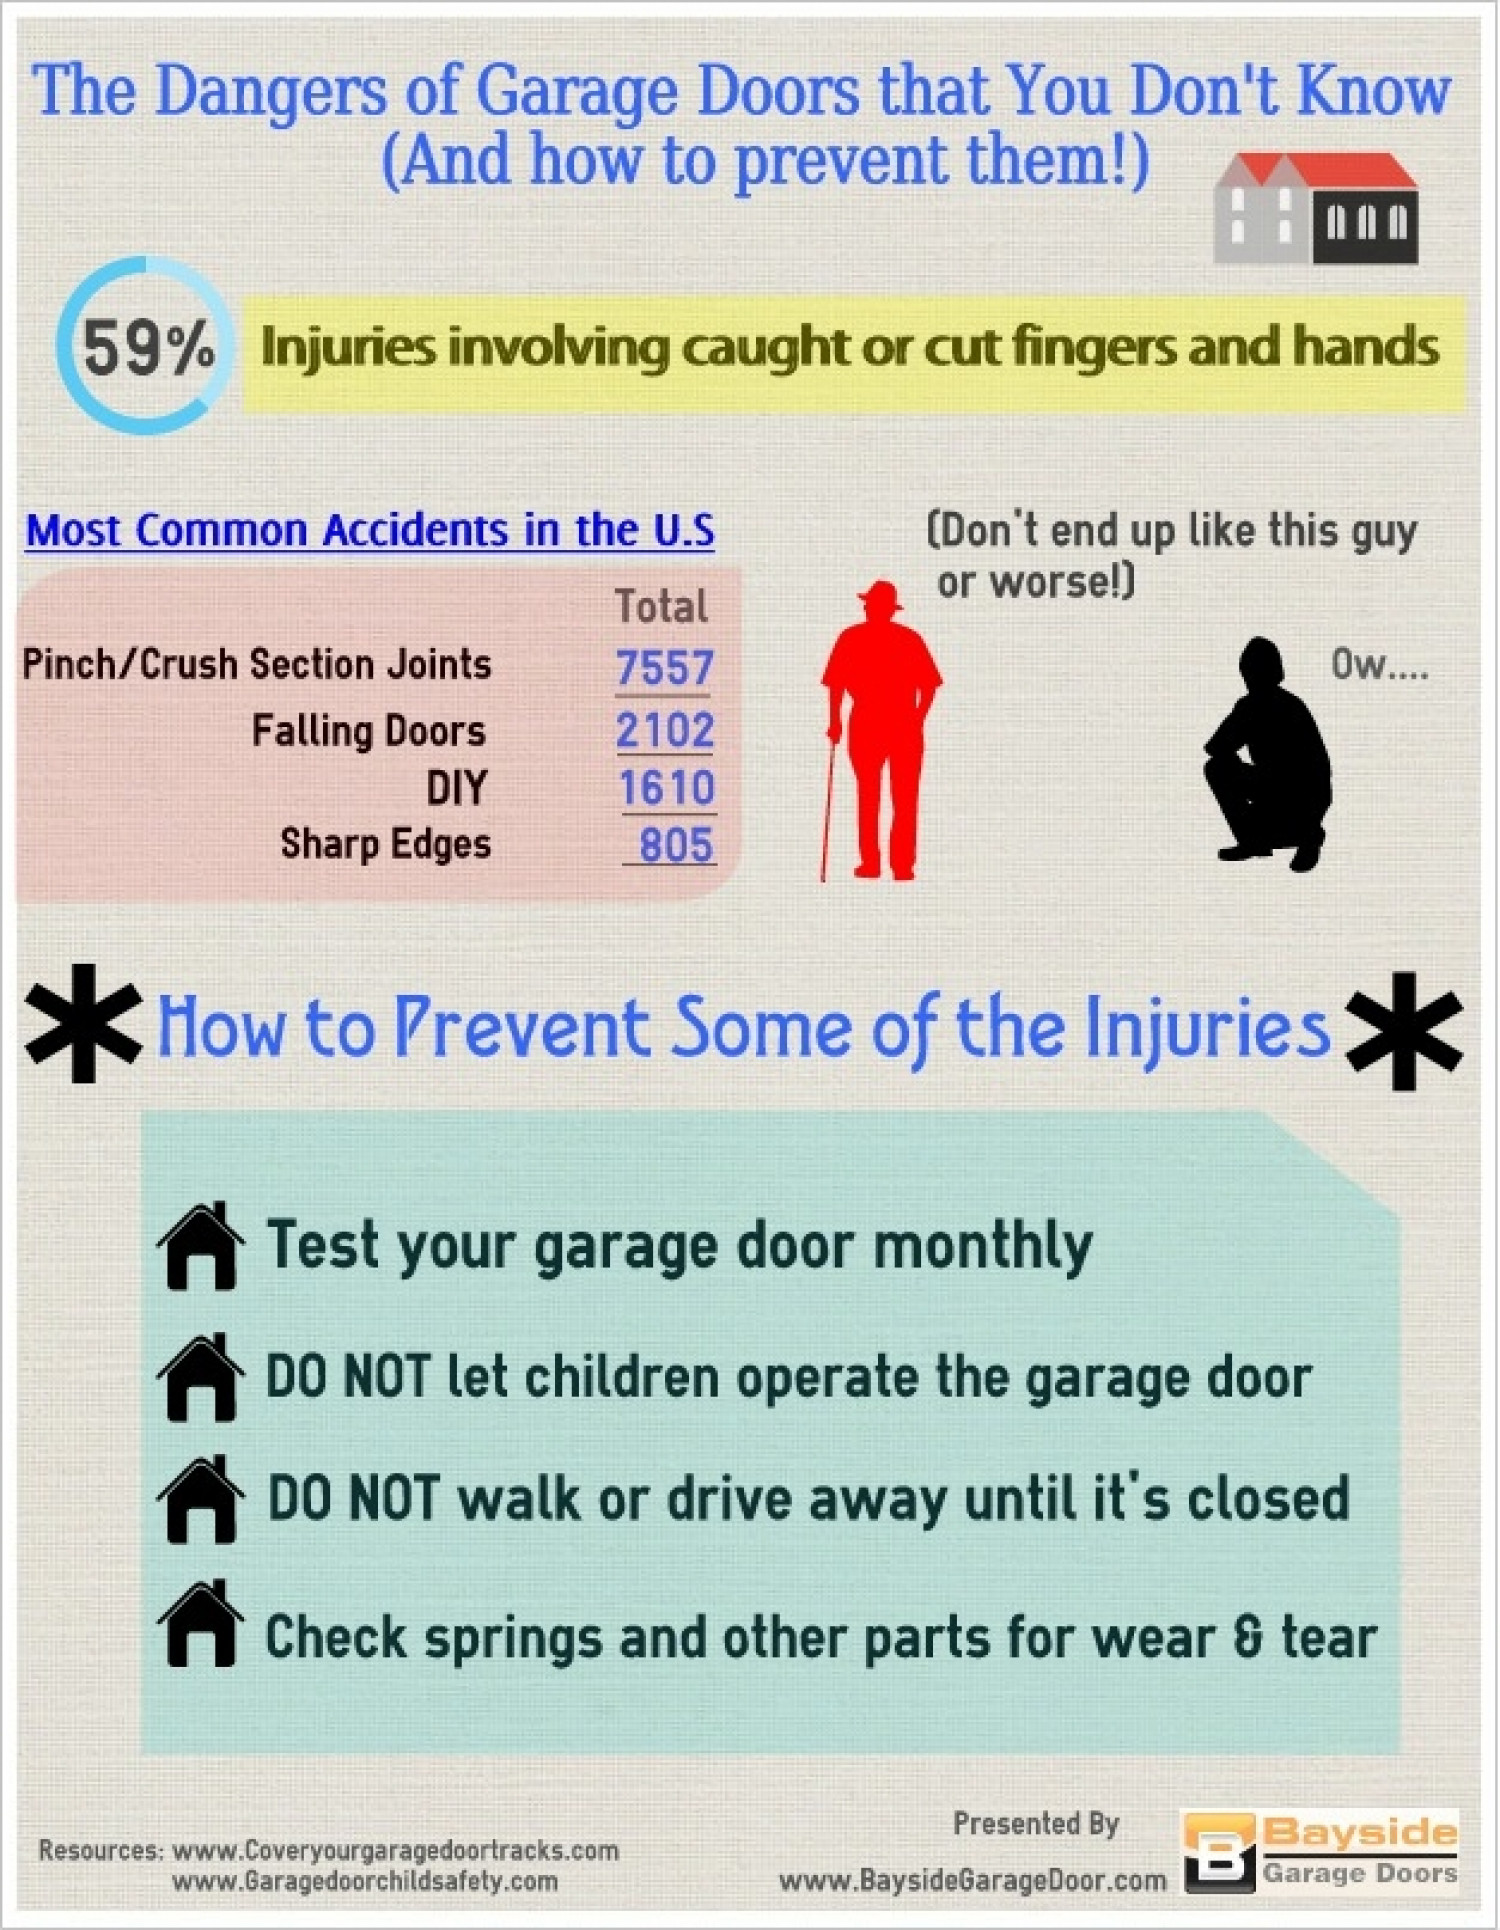 The Dangers of Garage Doors You Don't Know Infographic